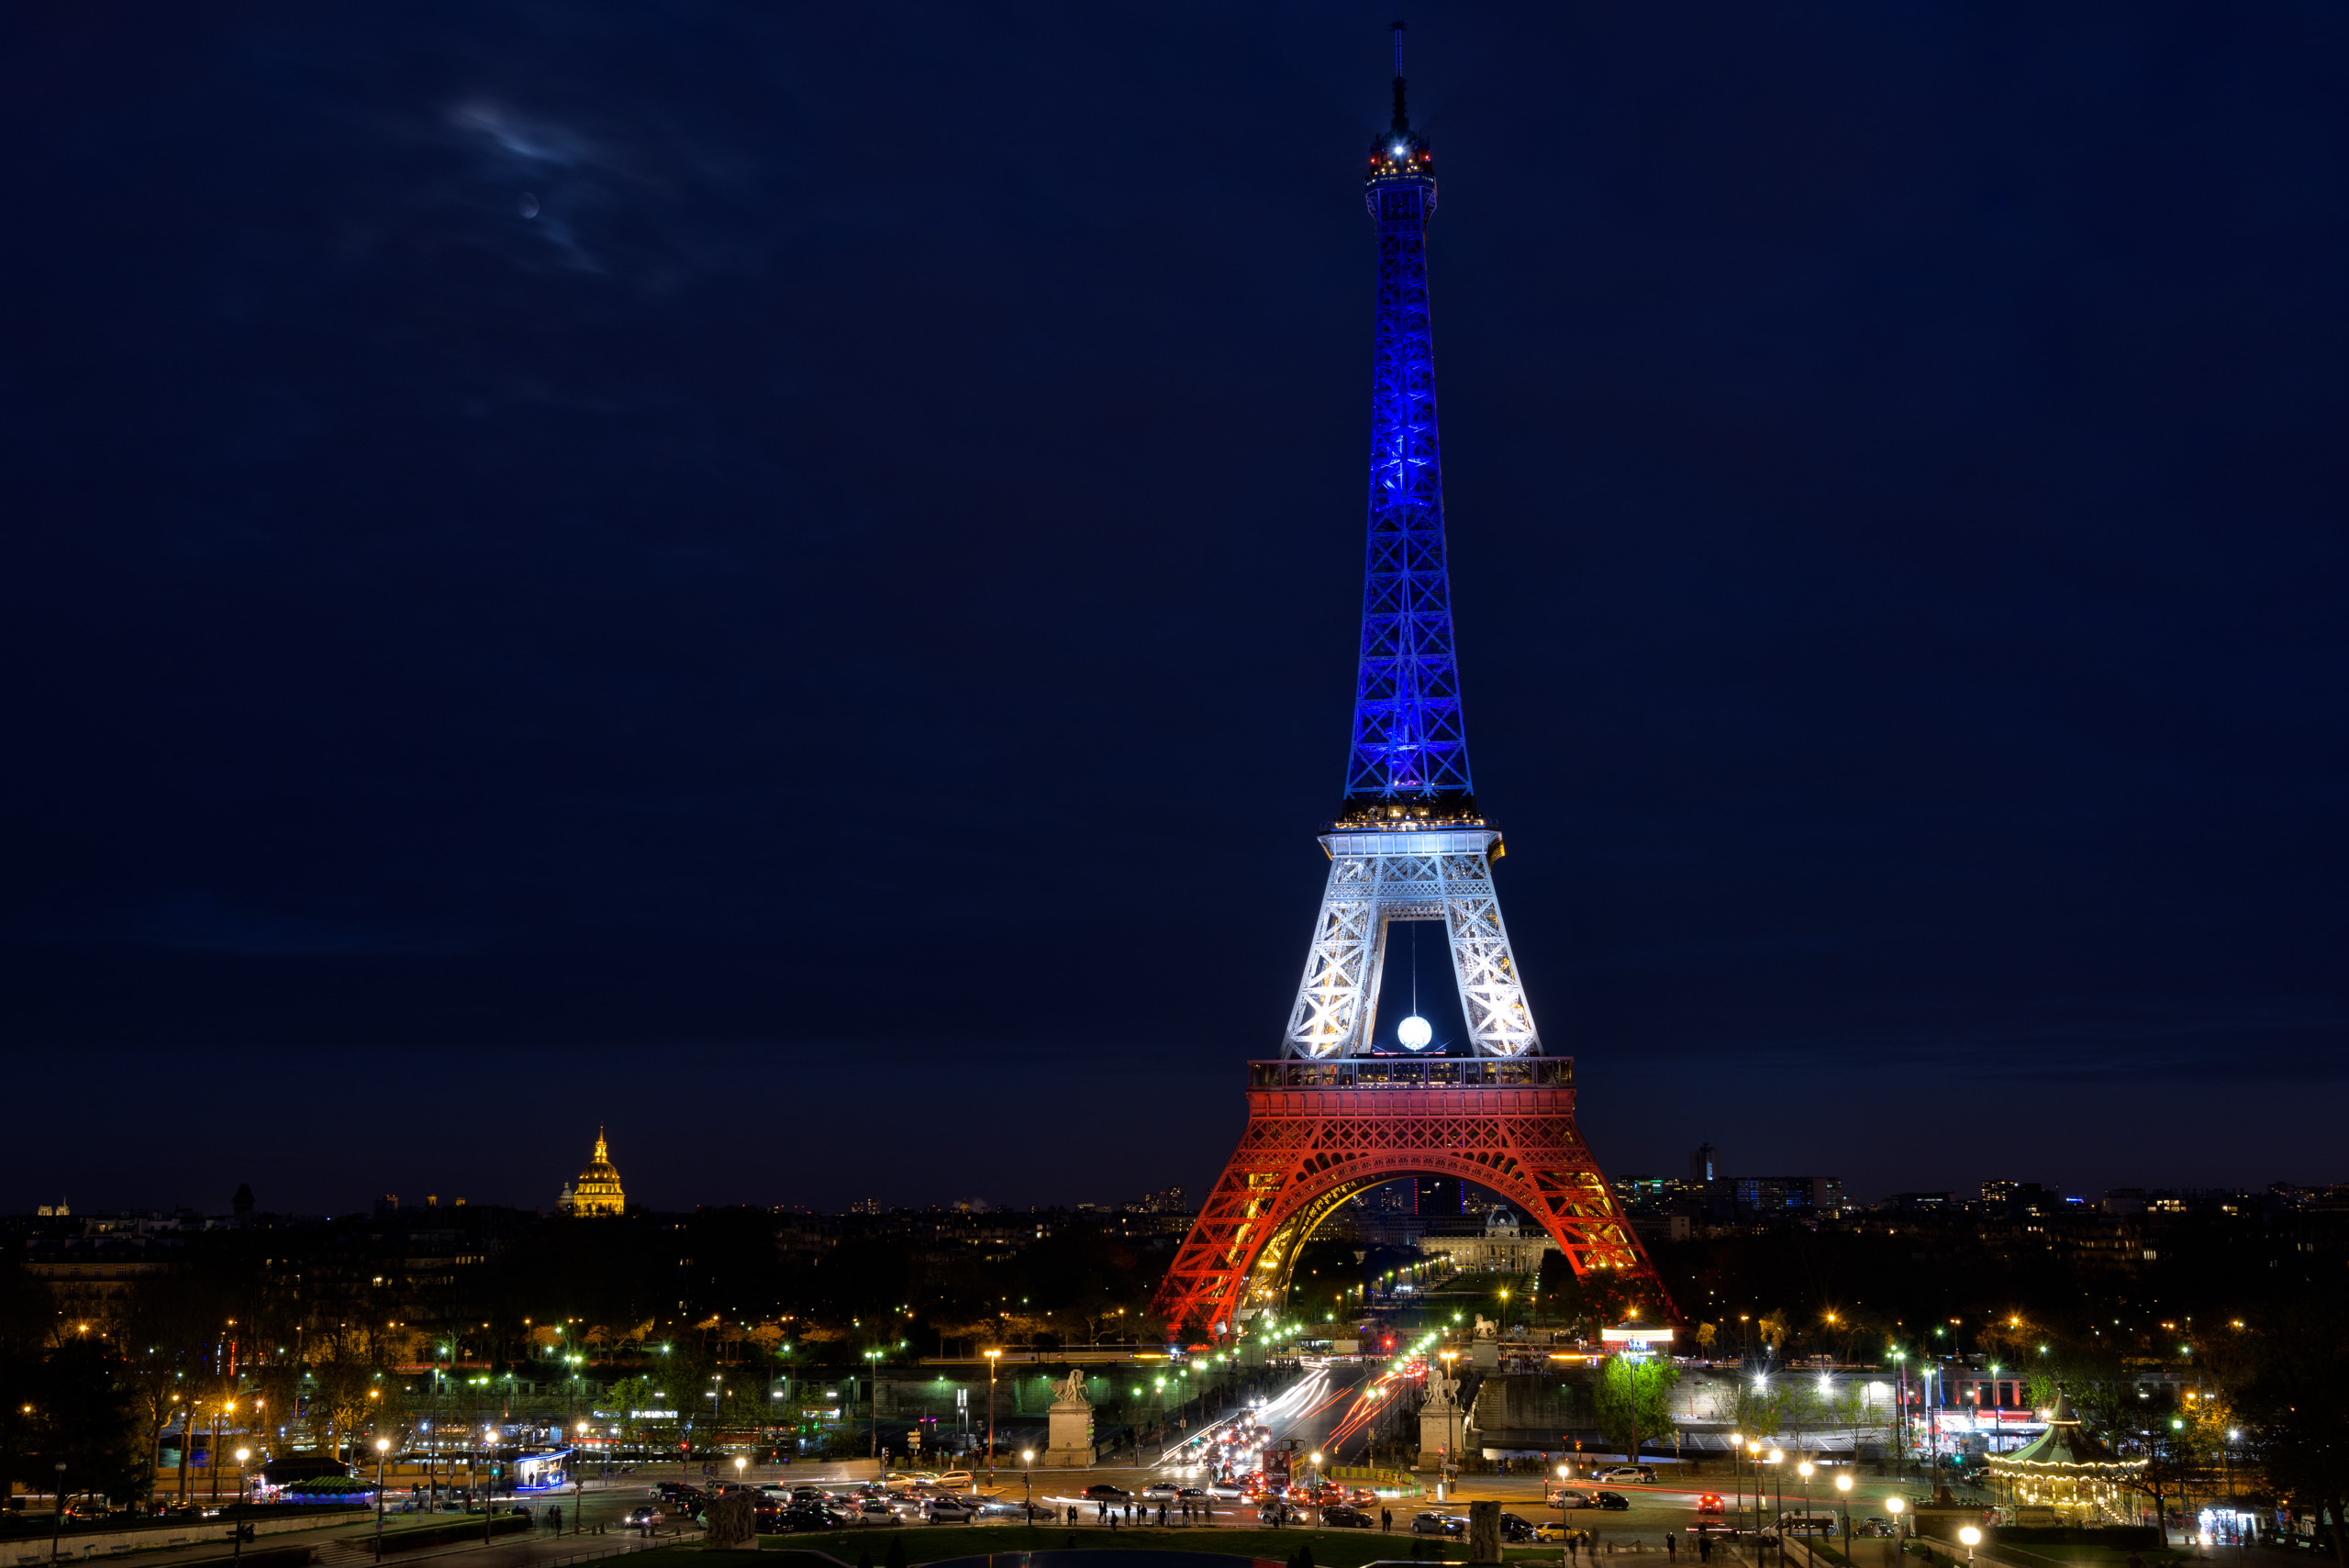 The eiffel tower illuminated in the colors of the french flag